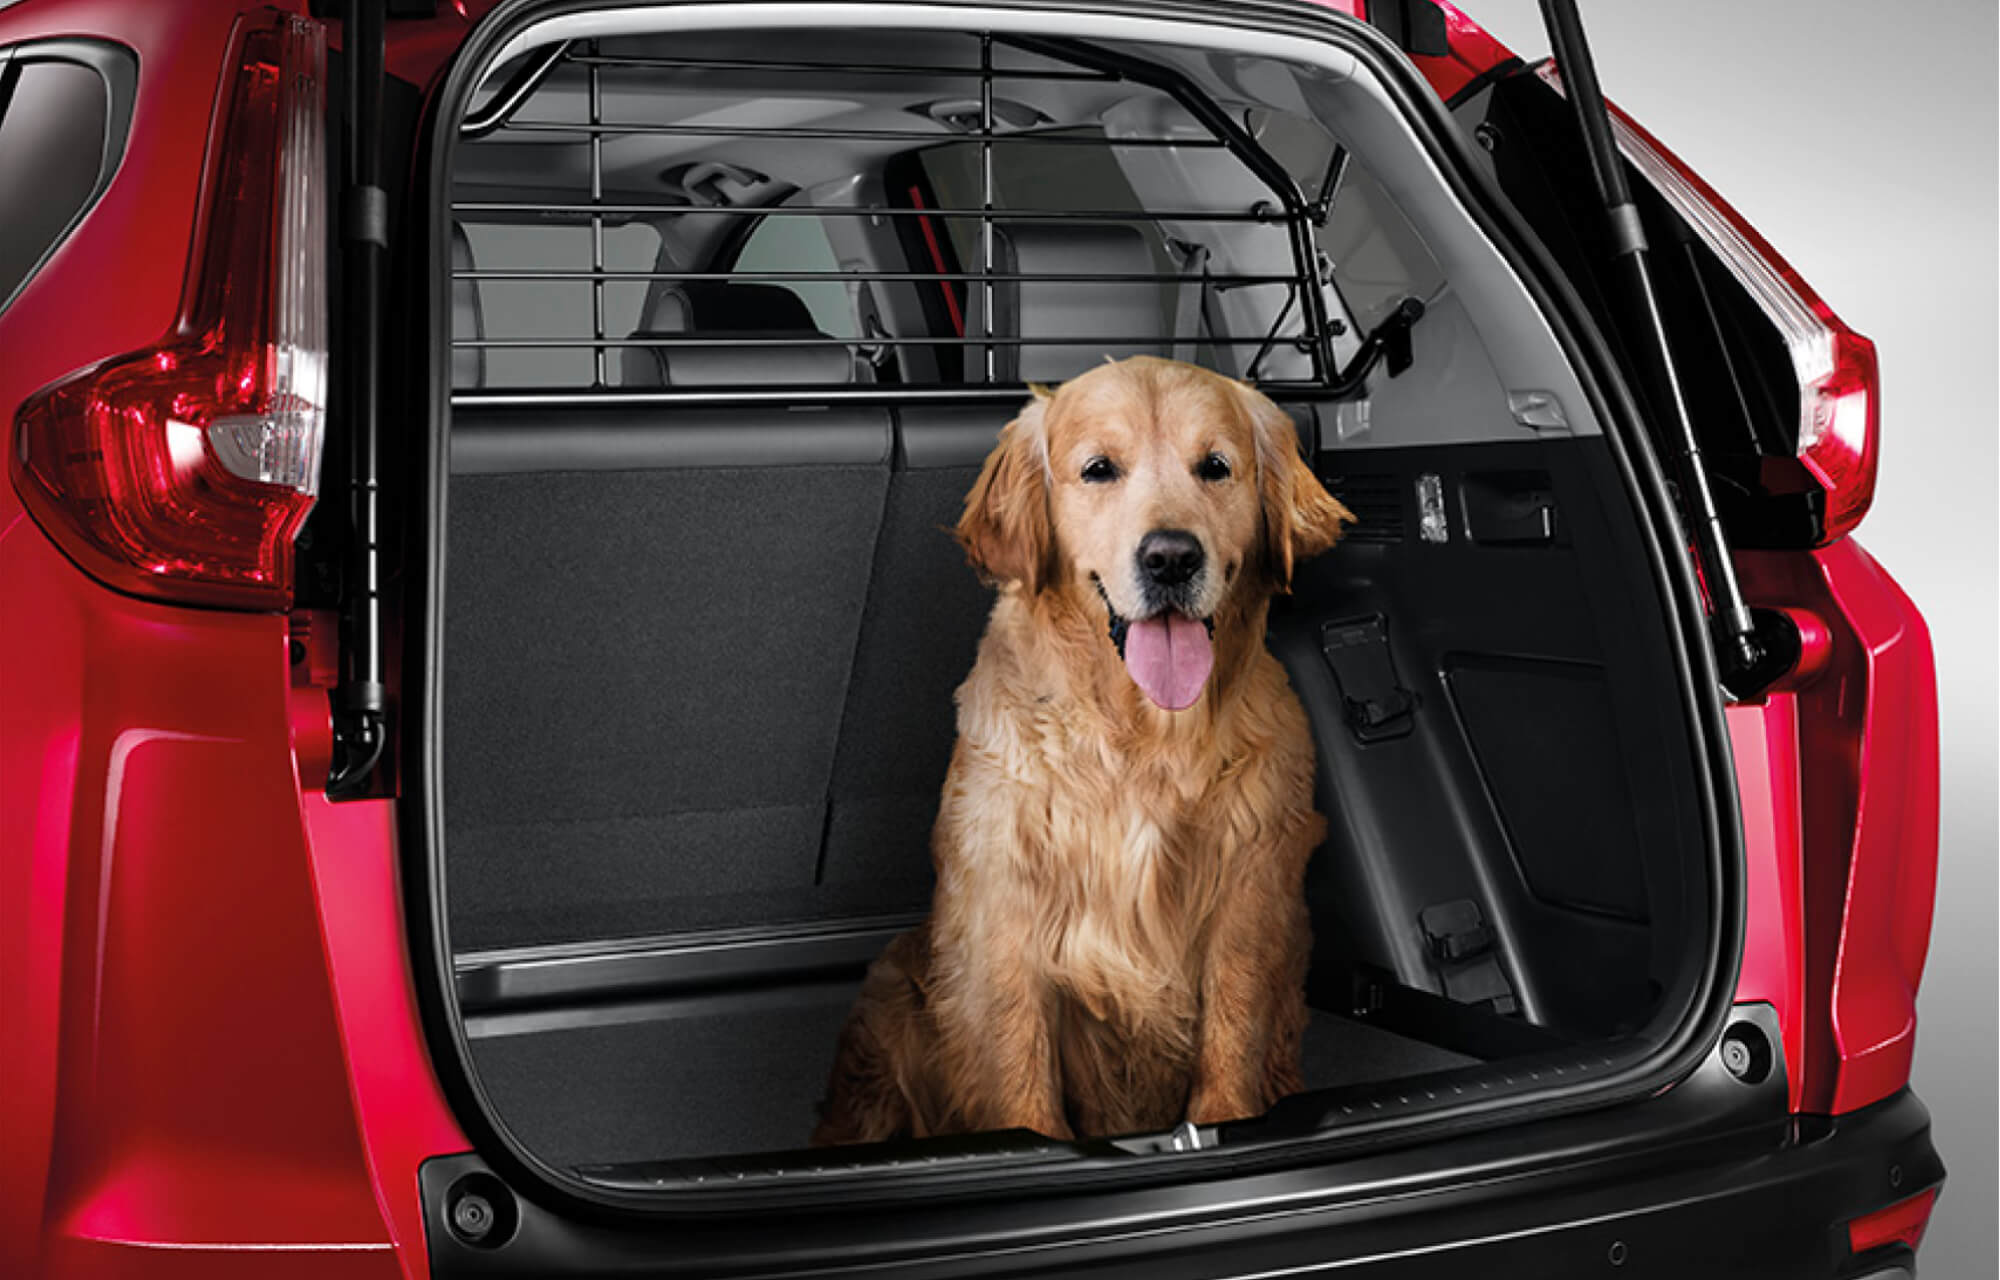 CR-V Dog Guard